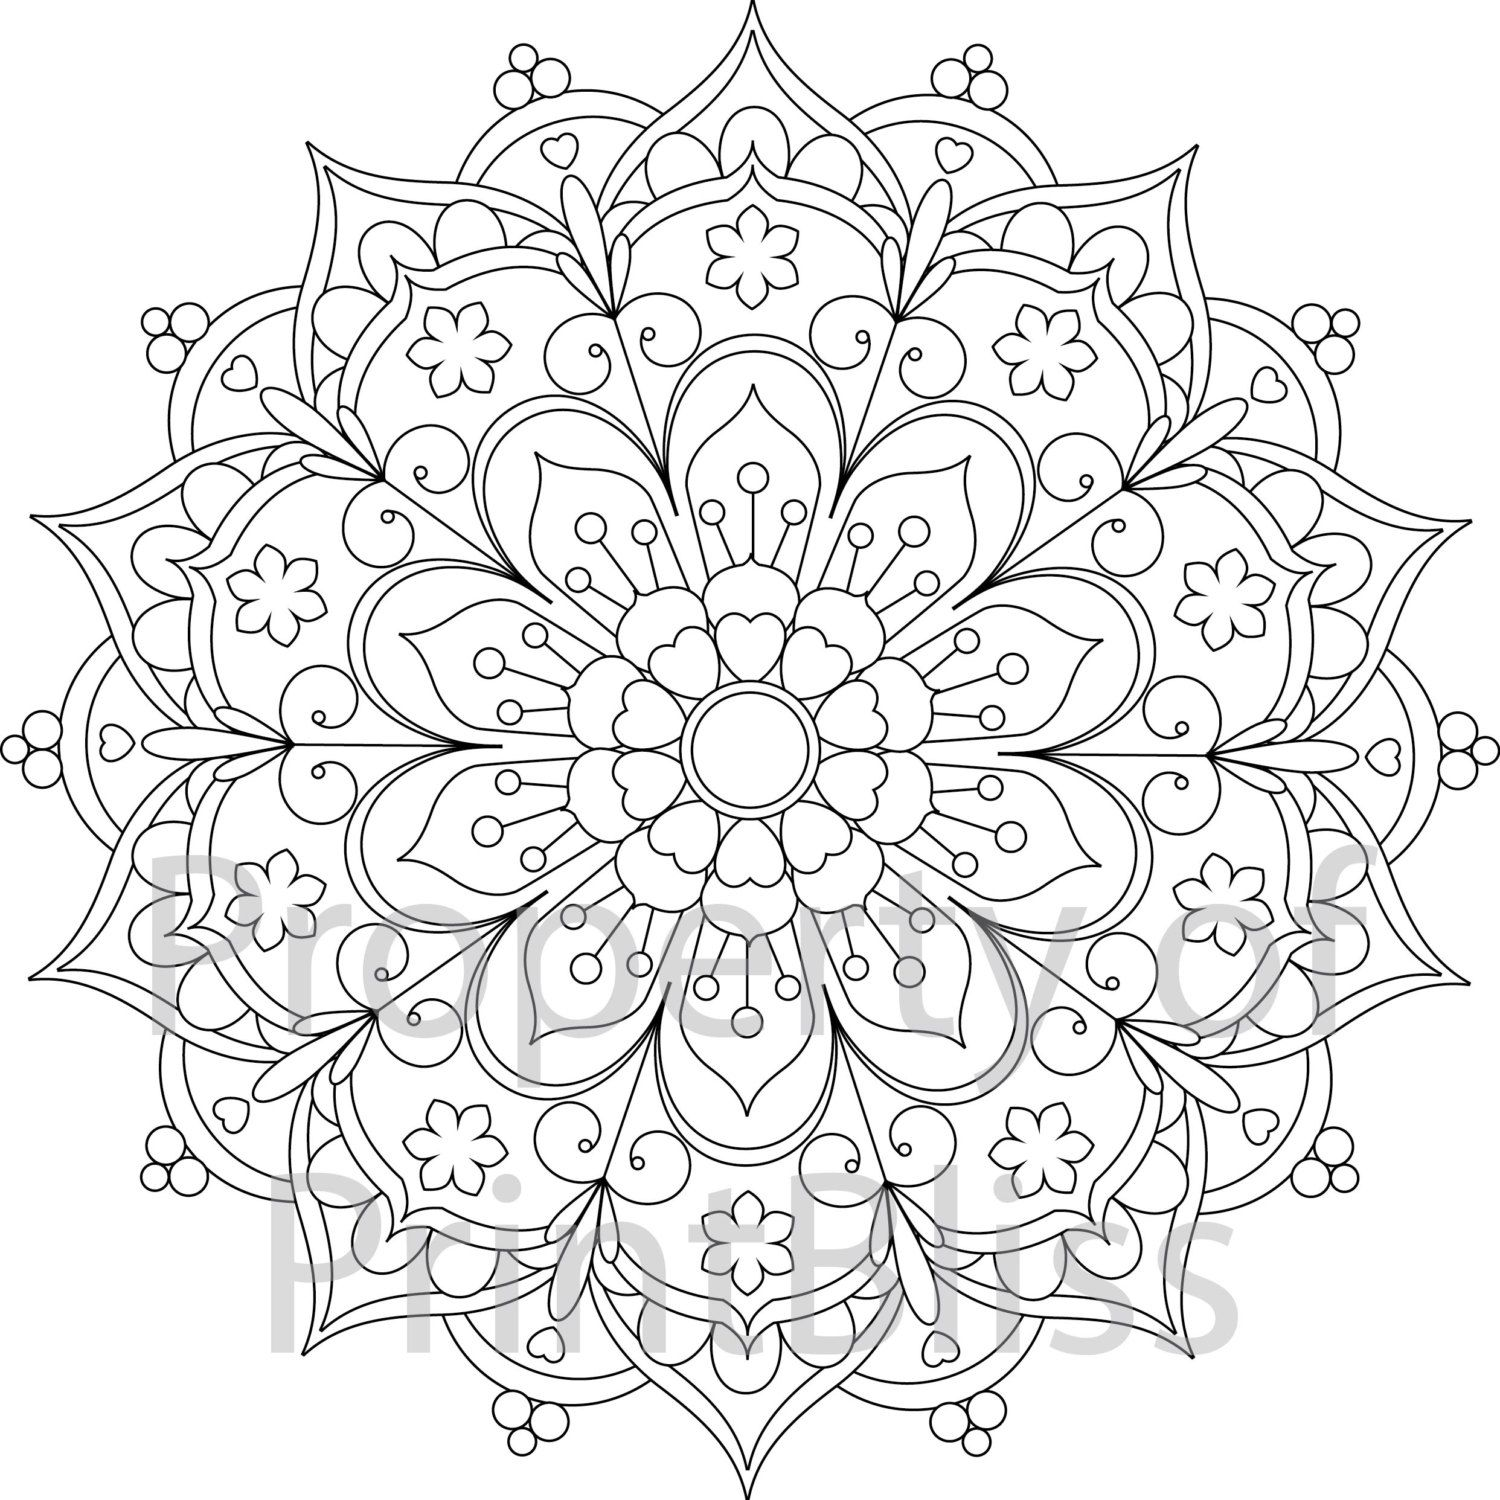 25 Flower Mandala Printable Coloring Page By Printbliss On Etsy